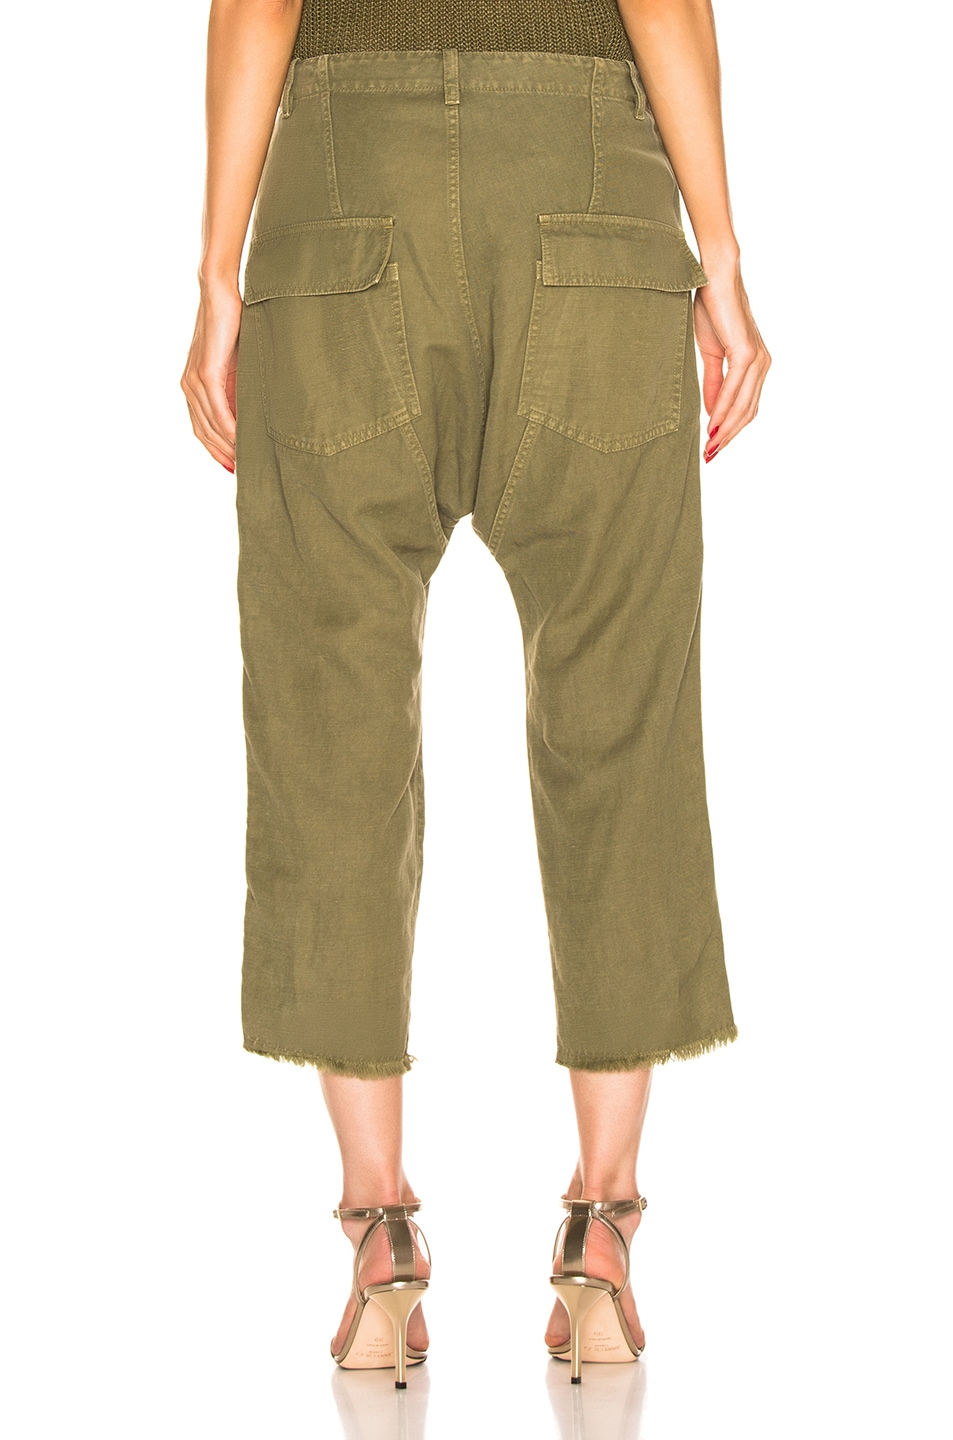 Image 4 of NILI LOTAN Luna Pant with Tape in Uniform Green, Orange, Navy Blue